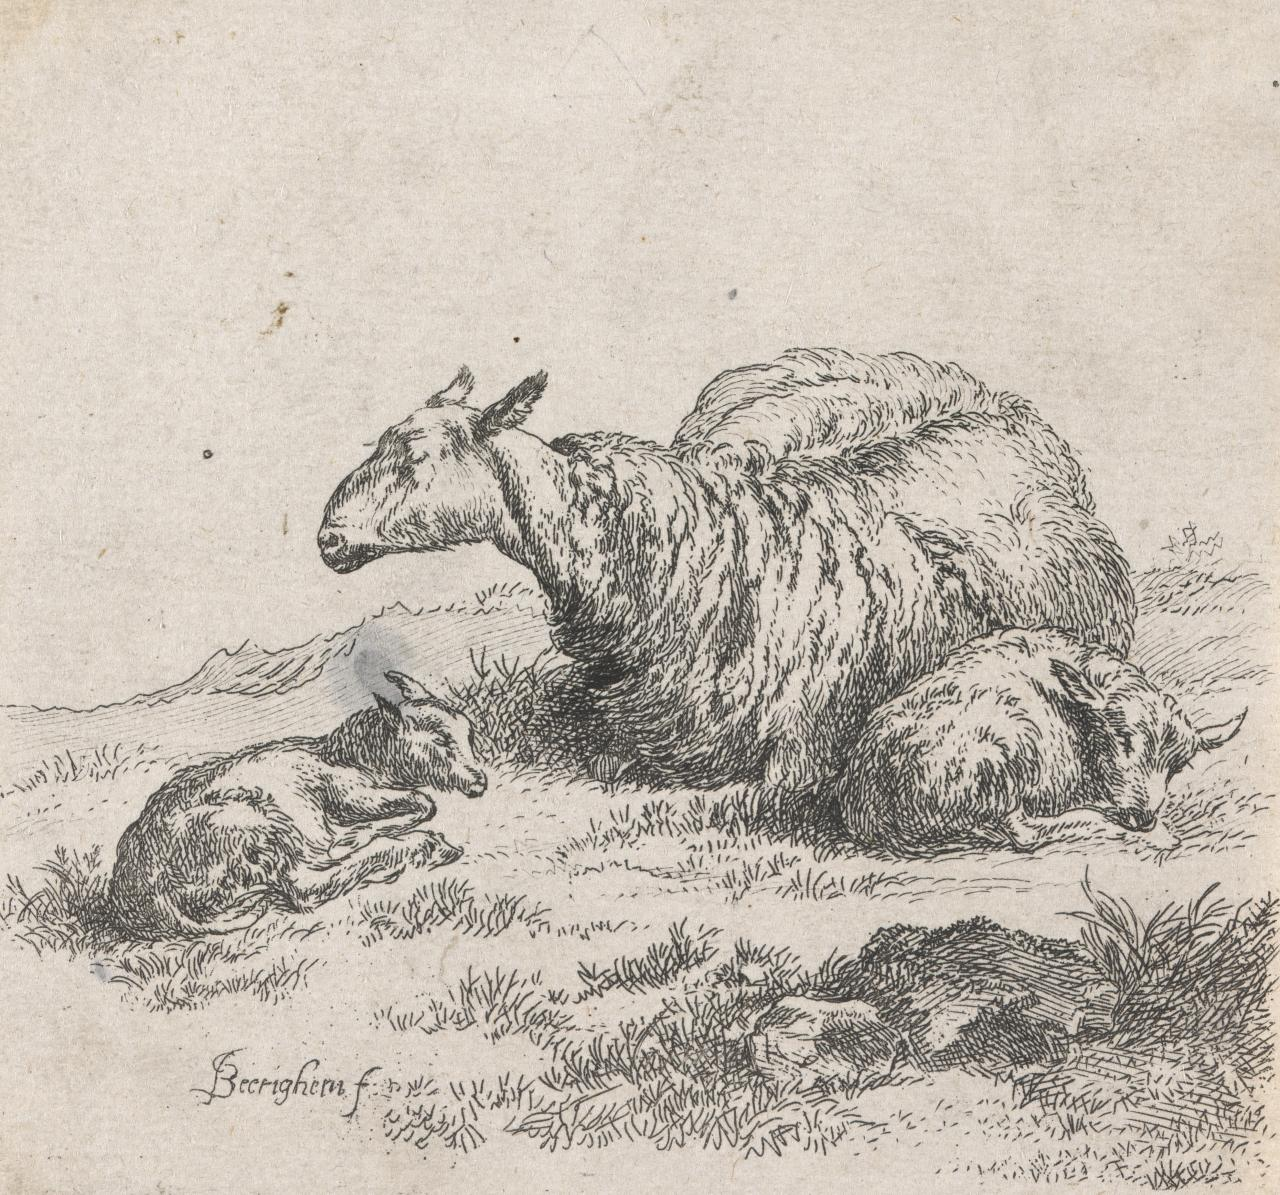 A reclining ewe with two lambs